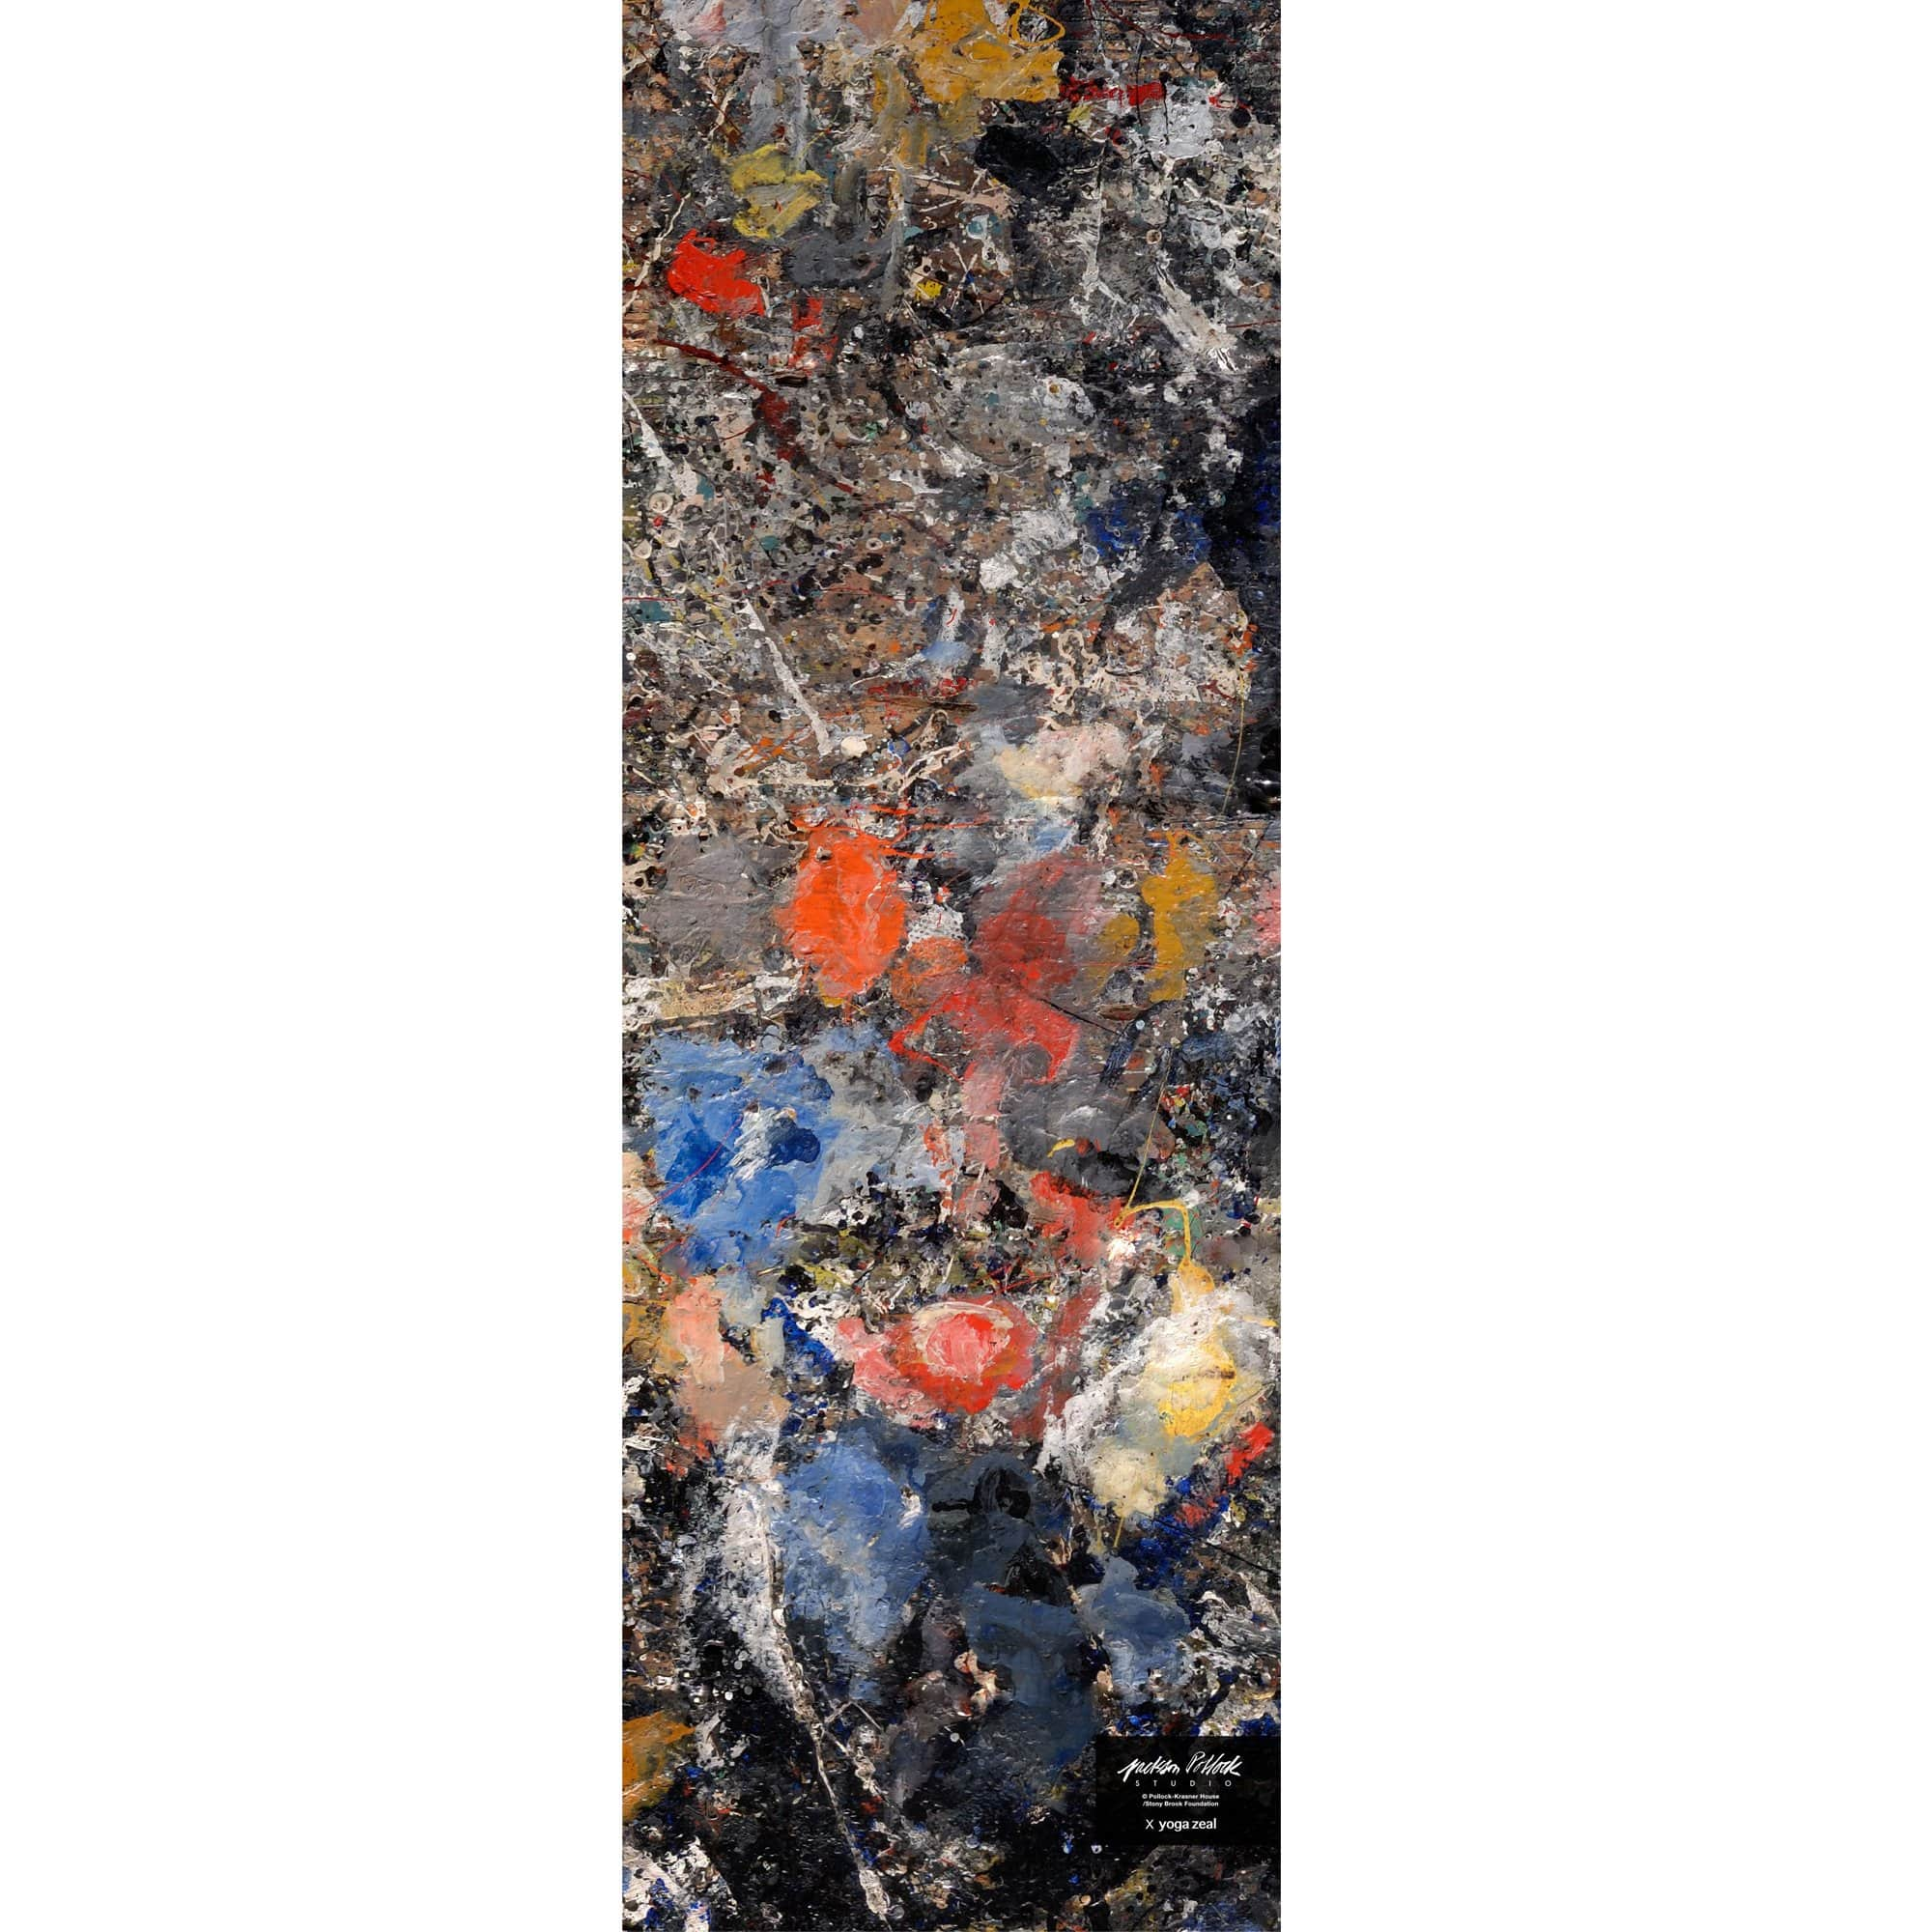 Yoga Zeal Yoga Jackson Pollock Studio x Yoga Zeal Floor Mat (Version 2)